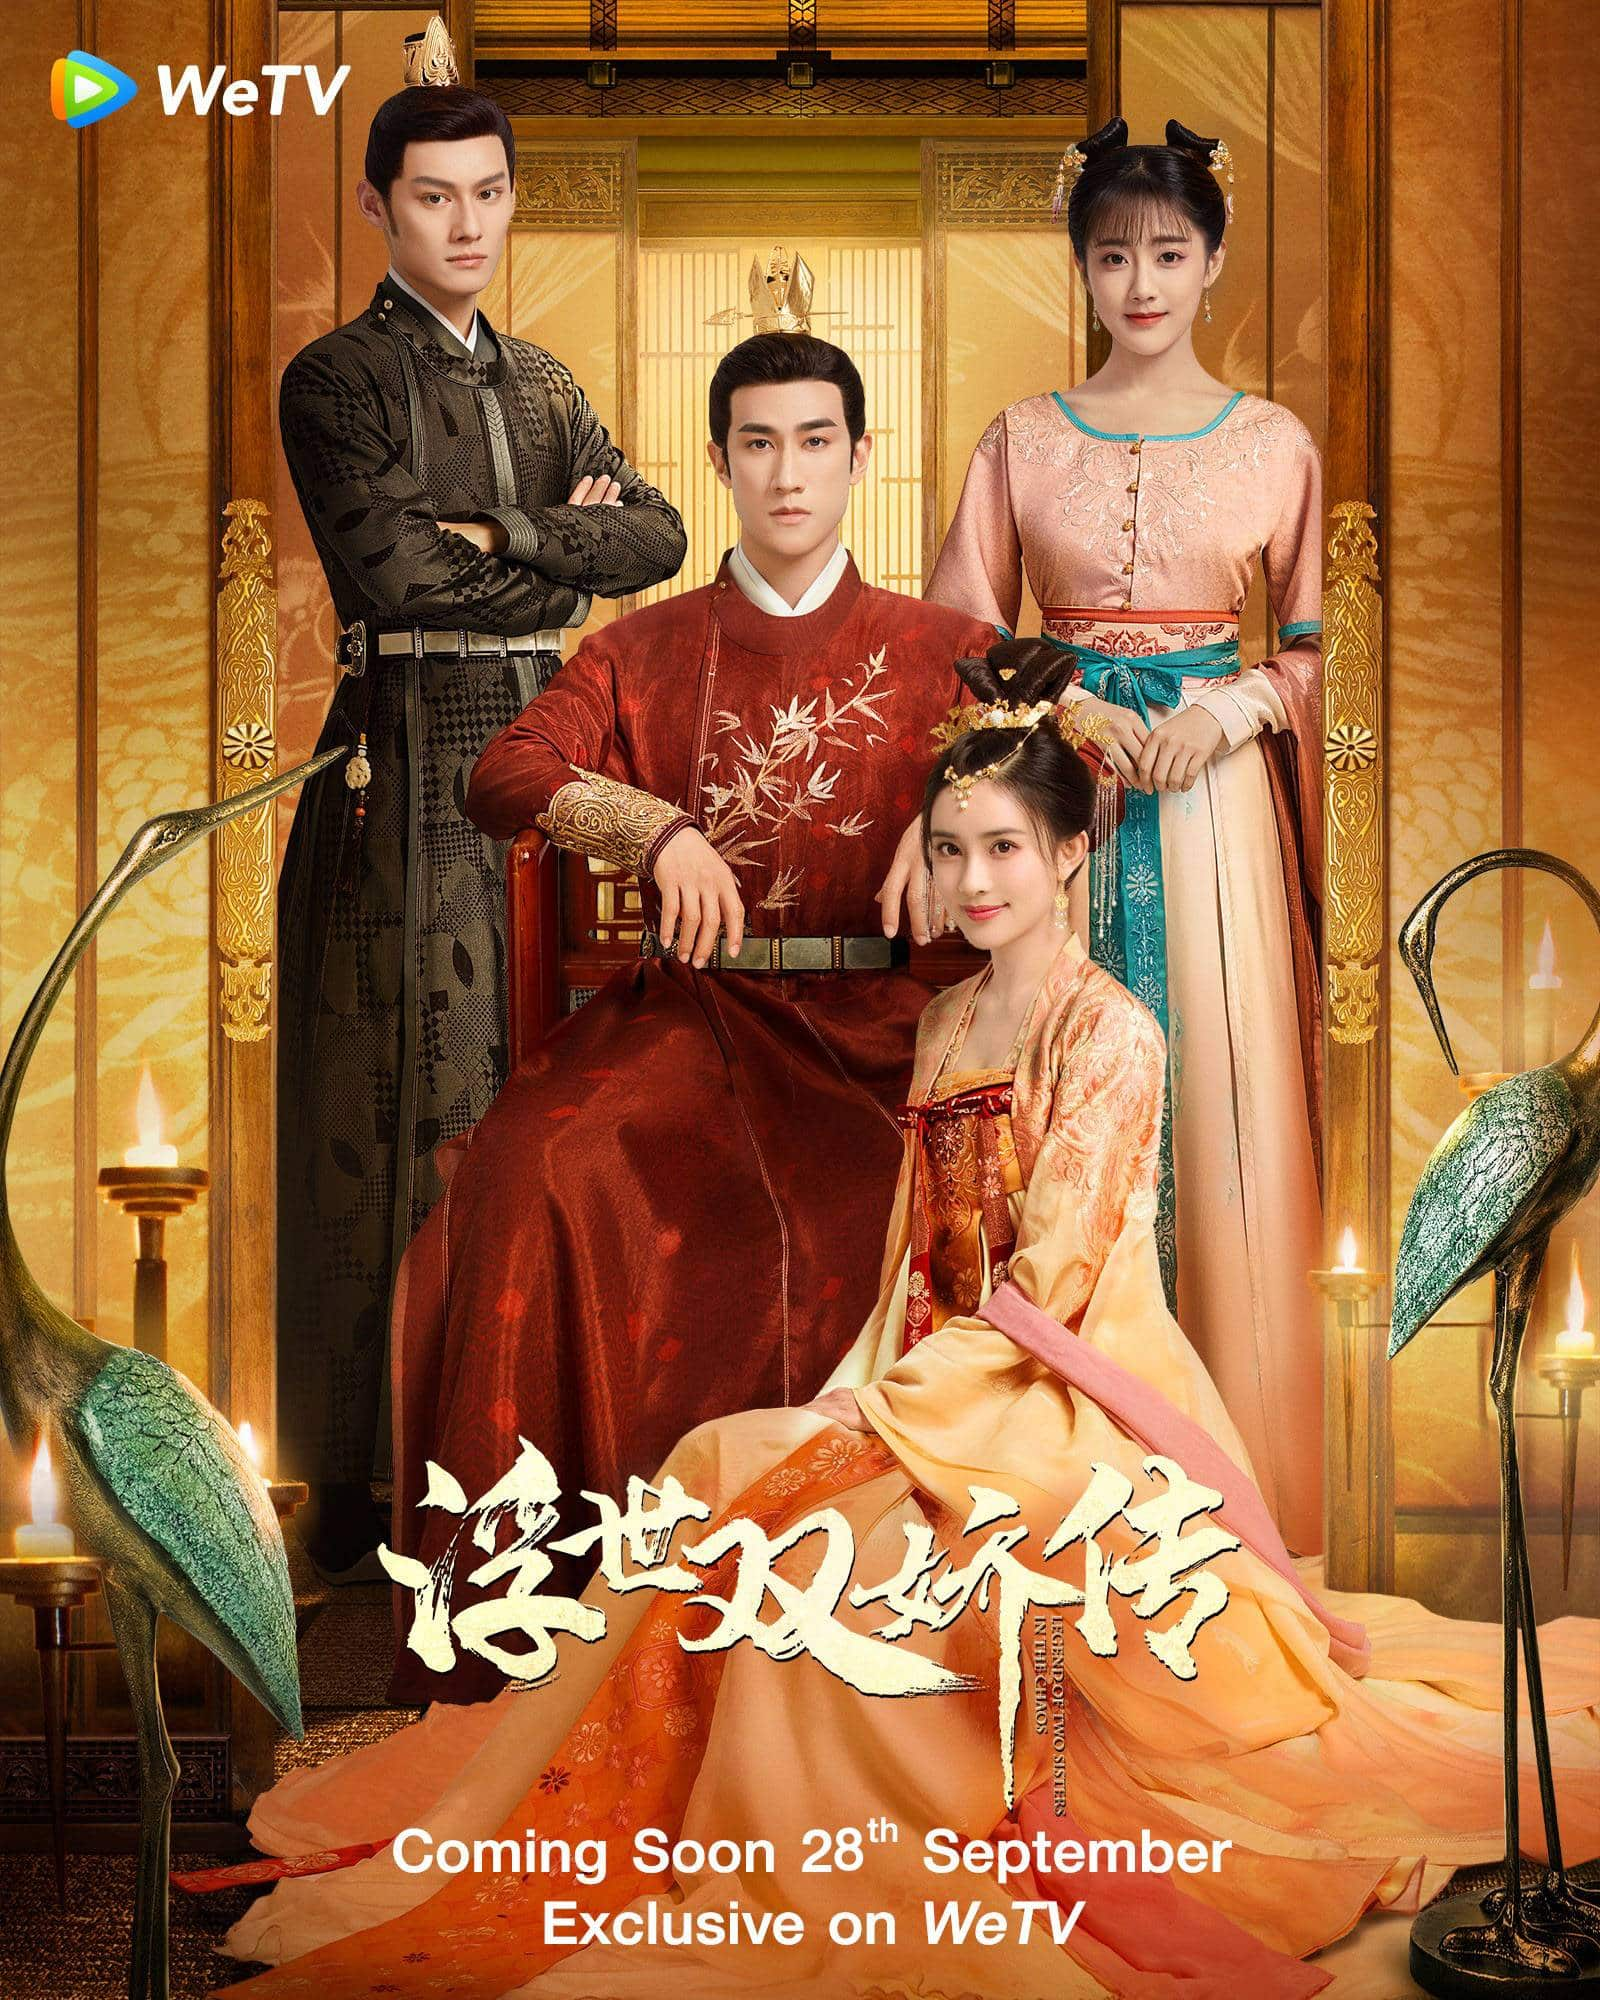 Sinopsis Legend of Two Sisters In the Chaos 2020 Episode 1 - 40 Terakhir